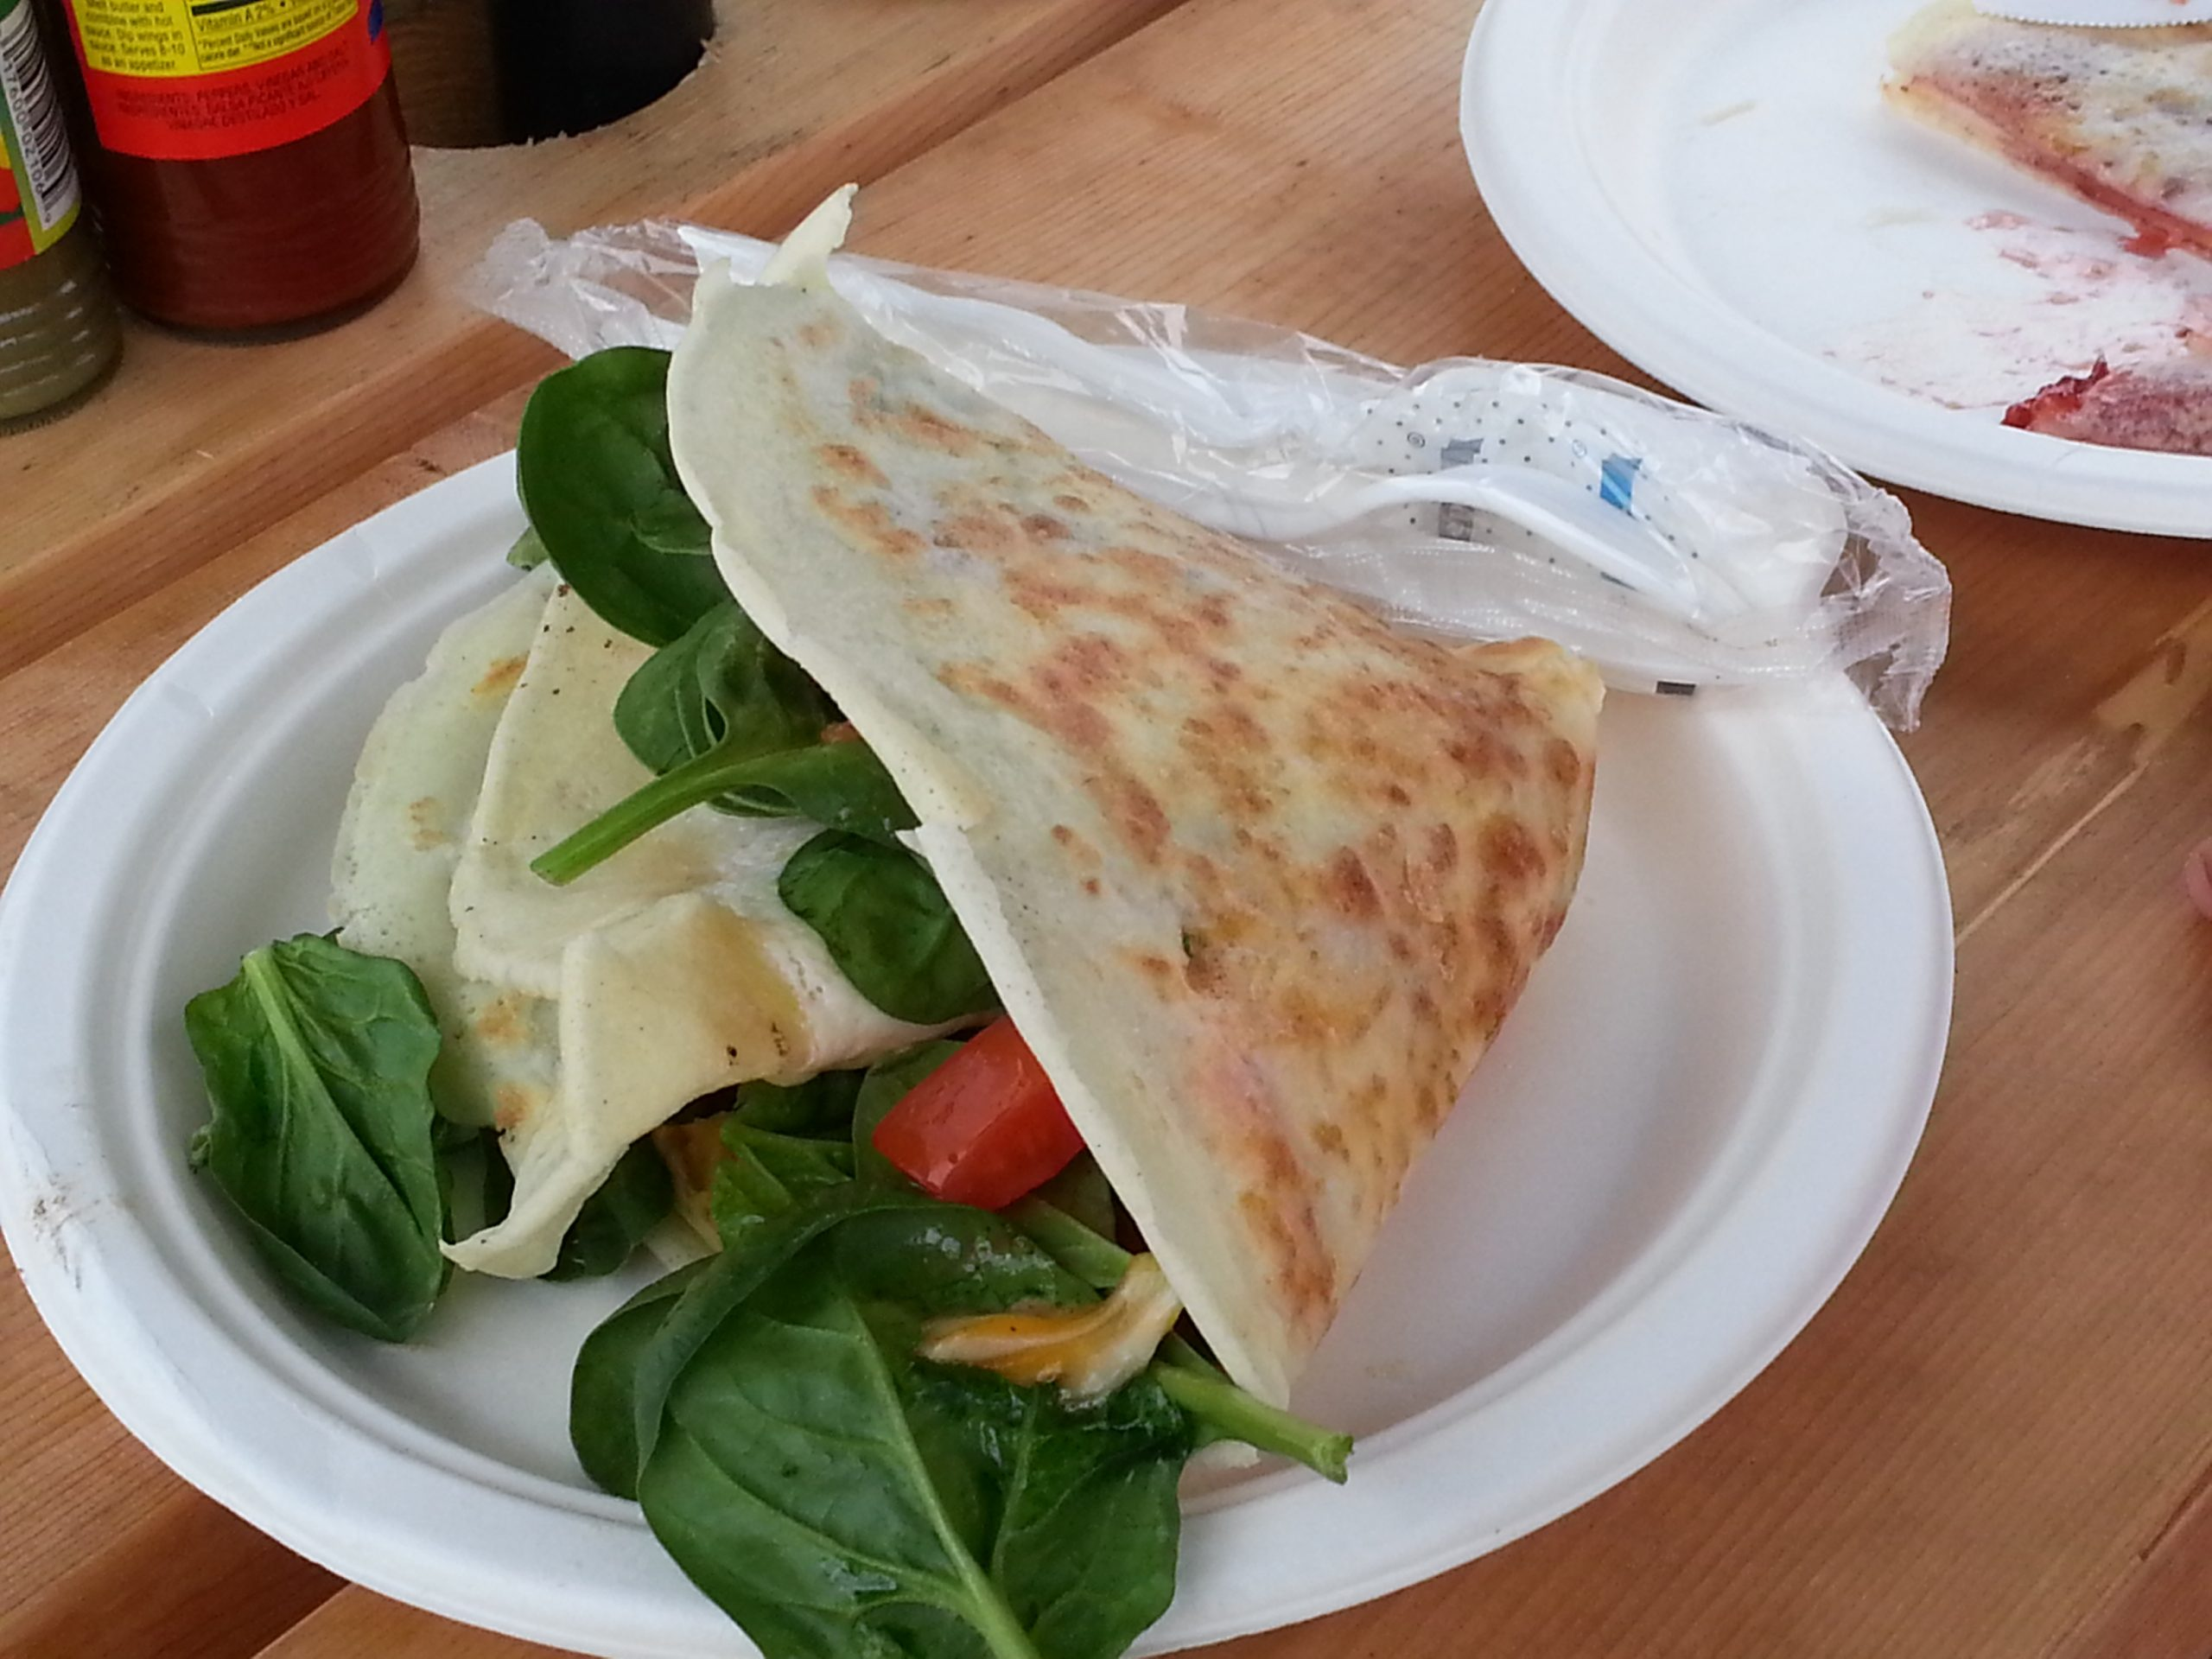 Sunday morning breakfast before shopping at Quarry Farmers Market. Sunrise crepe for me and Strawberry Jam for mini-me. Photo by Georgina Morgan